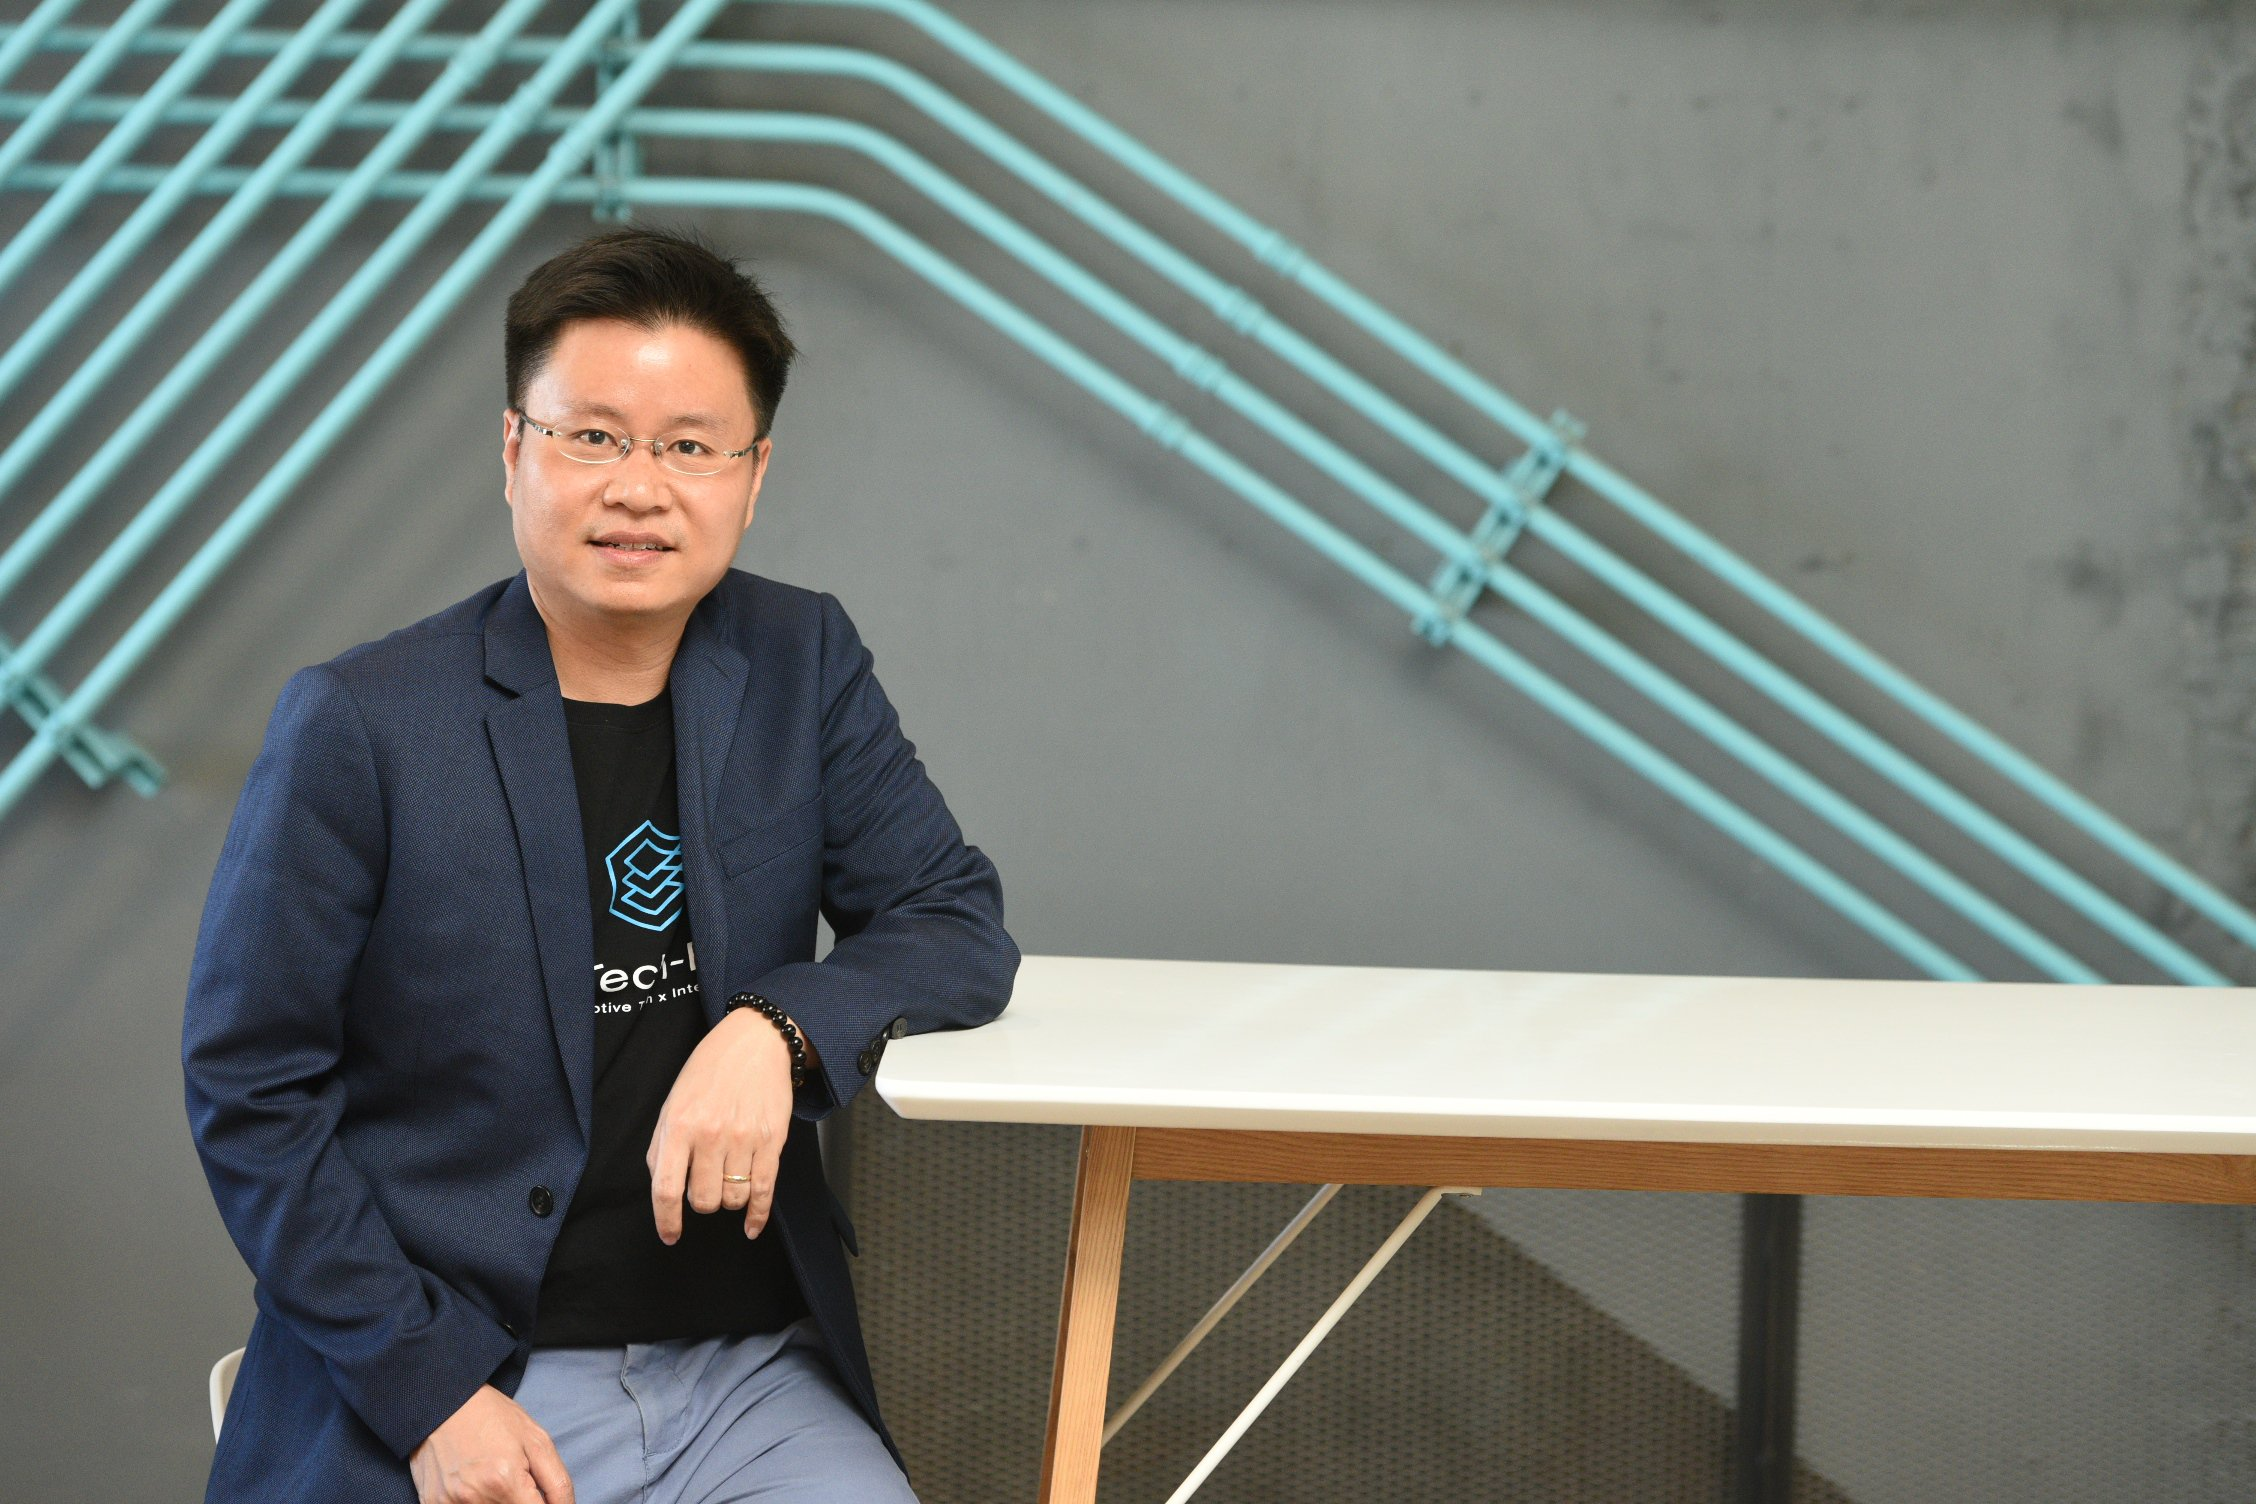 Sansiri affirms its leadership as Thailand's First Digital Real Estate Developer with new 'Sansiri Tech Forward' vision to drive its innovation-led ambition